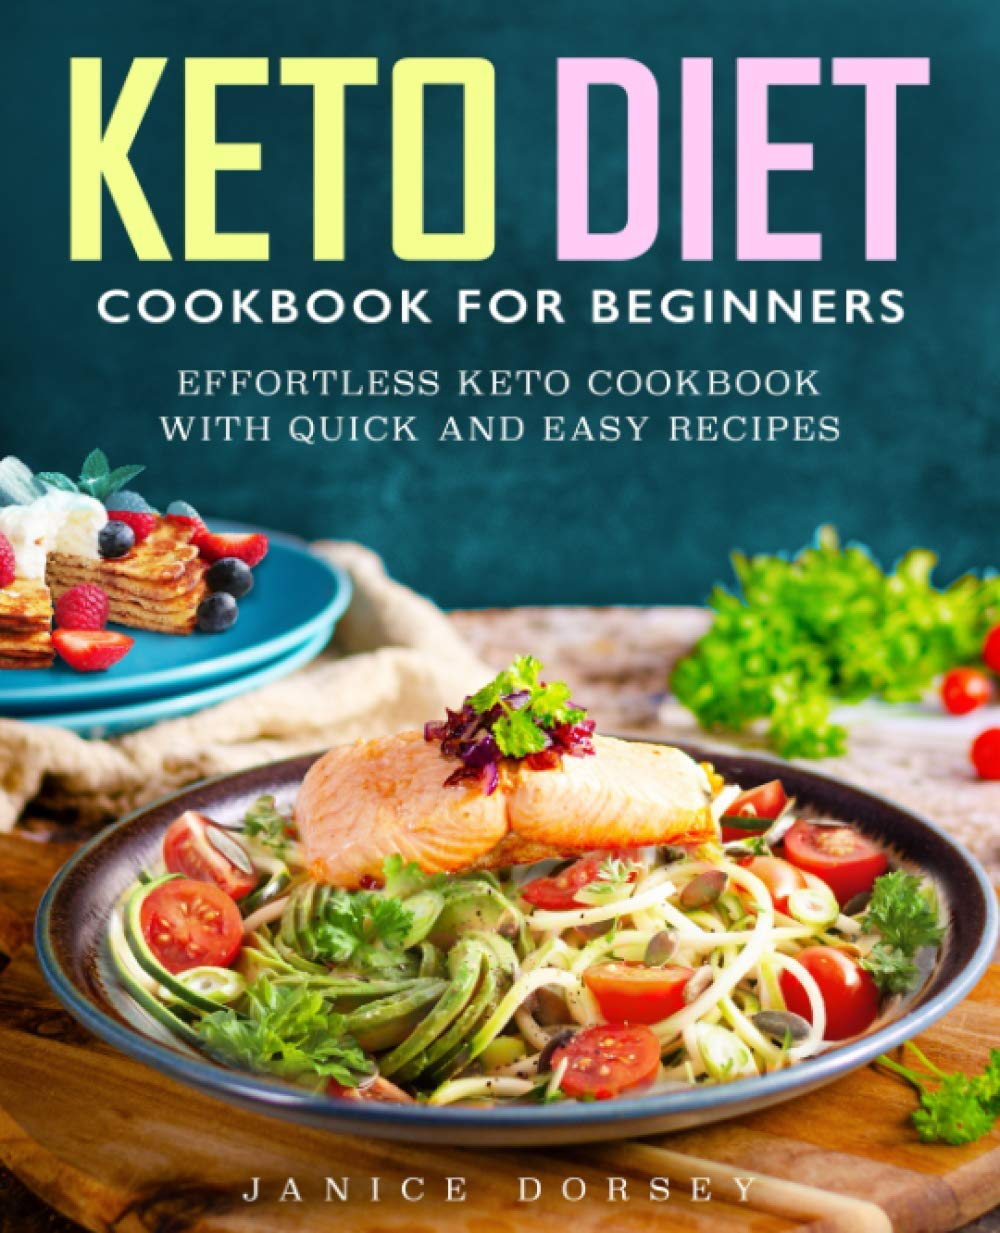 Keto Diet Cookbook For Beginners: Effortless Keto Cookbook With Quick And Easy Recipes 1